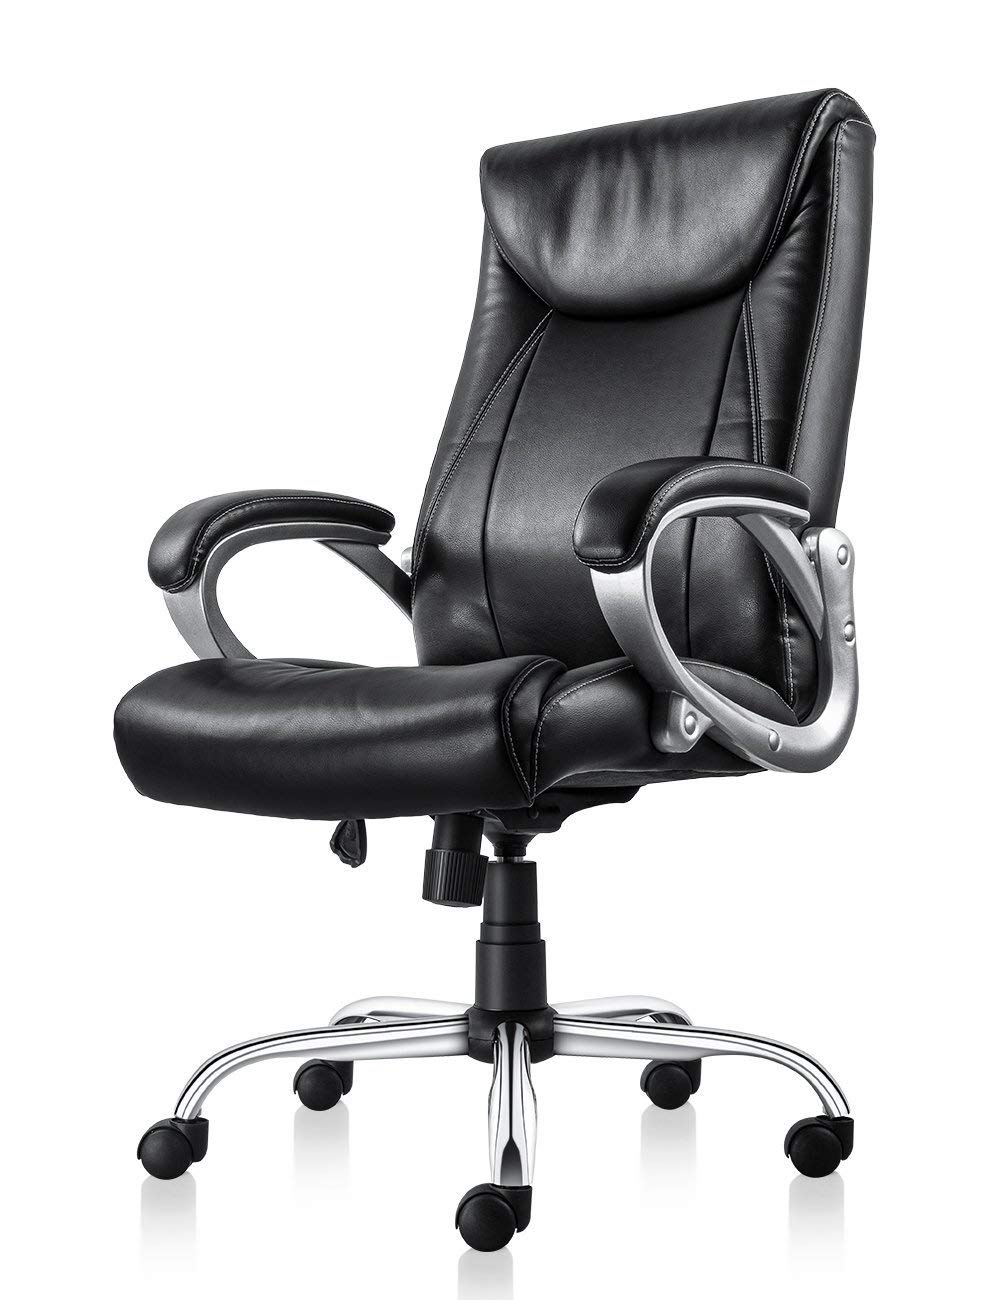 MDL Furniture High Back Executive Office Chair with Thick Padding Headrest and Armrest Heavy Duty Office Chair with Tilt Function Home Office Chair